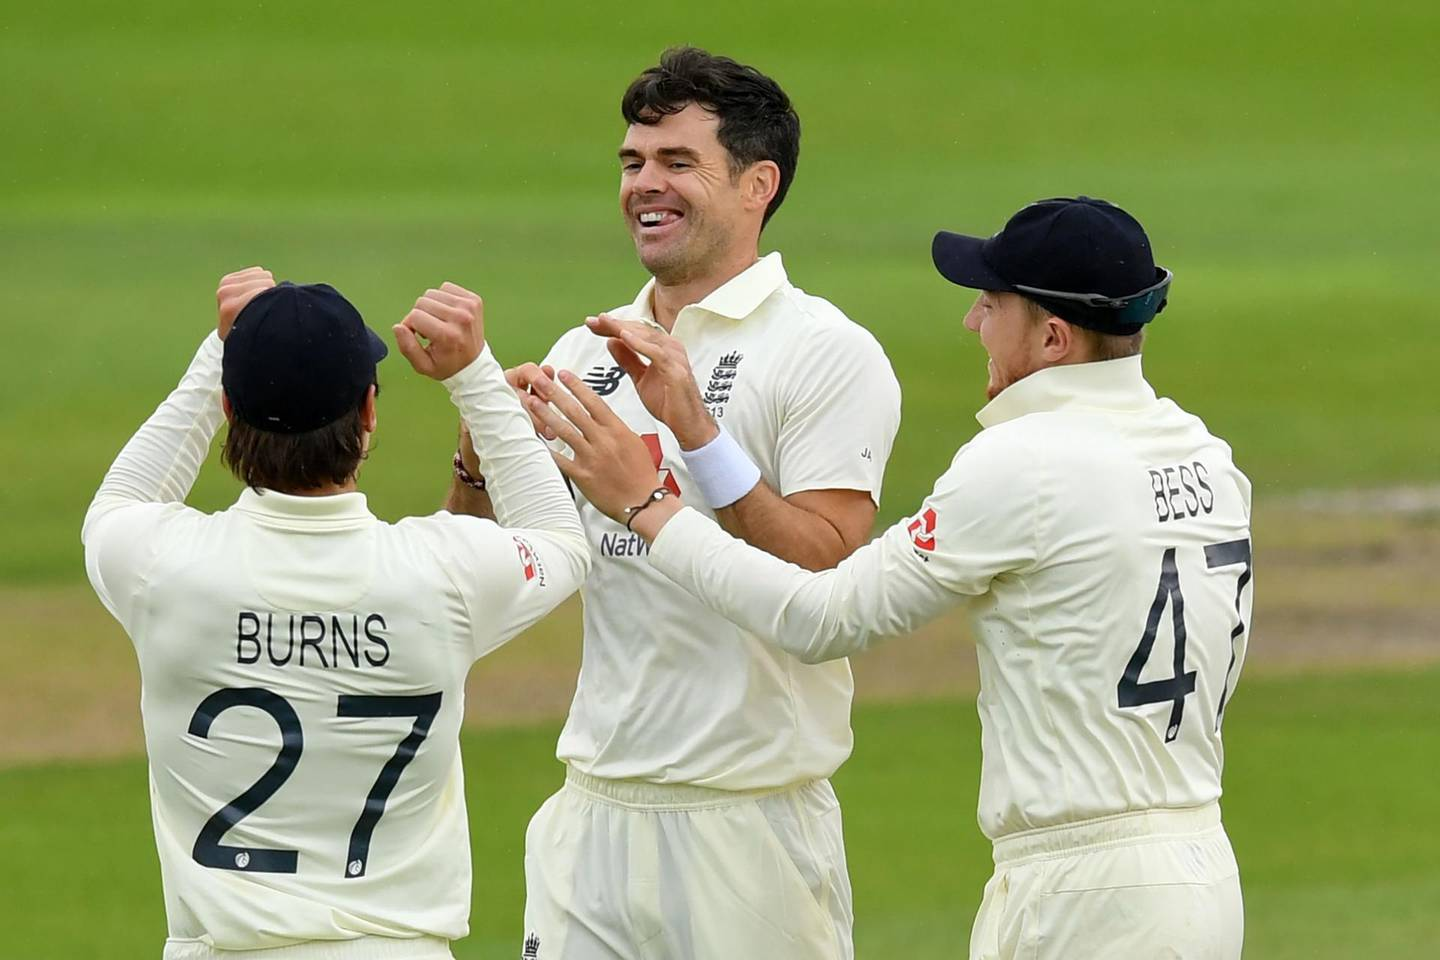 England's James Anderson (C) celebrates with teammates after taking the wicket of Pakistan's Babar Azam for 69 in the opening over on the second day of the first Test cricket match between England and Pakistan at Old Trafford in Manchester, north-west England on August 6, 2020.   - RESTRICTED TO EDITORIAL USE. NO ASSOCIATION WITH DIRECT COMPETITOR OF SPONSOR, PARTNER, OR SUPPLIER OF THE ECB  / AFP / POOL / Dan MULLAN / RESTRICTED TO EDITORIAL USE. NO ASSOCIATION WITH DIRECT COMPETITOR OF SPONSOR, PARTNER, OR SUPPLIER OF THE ECB